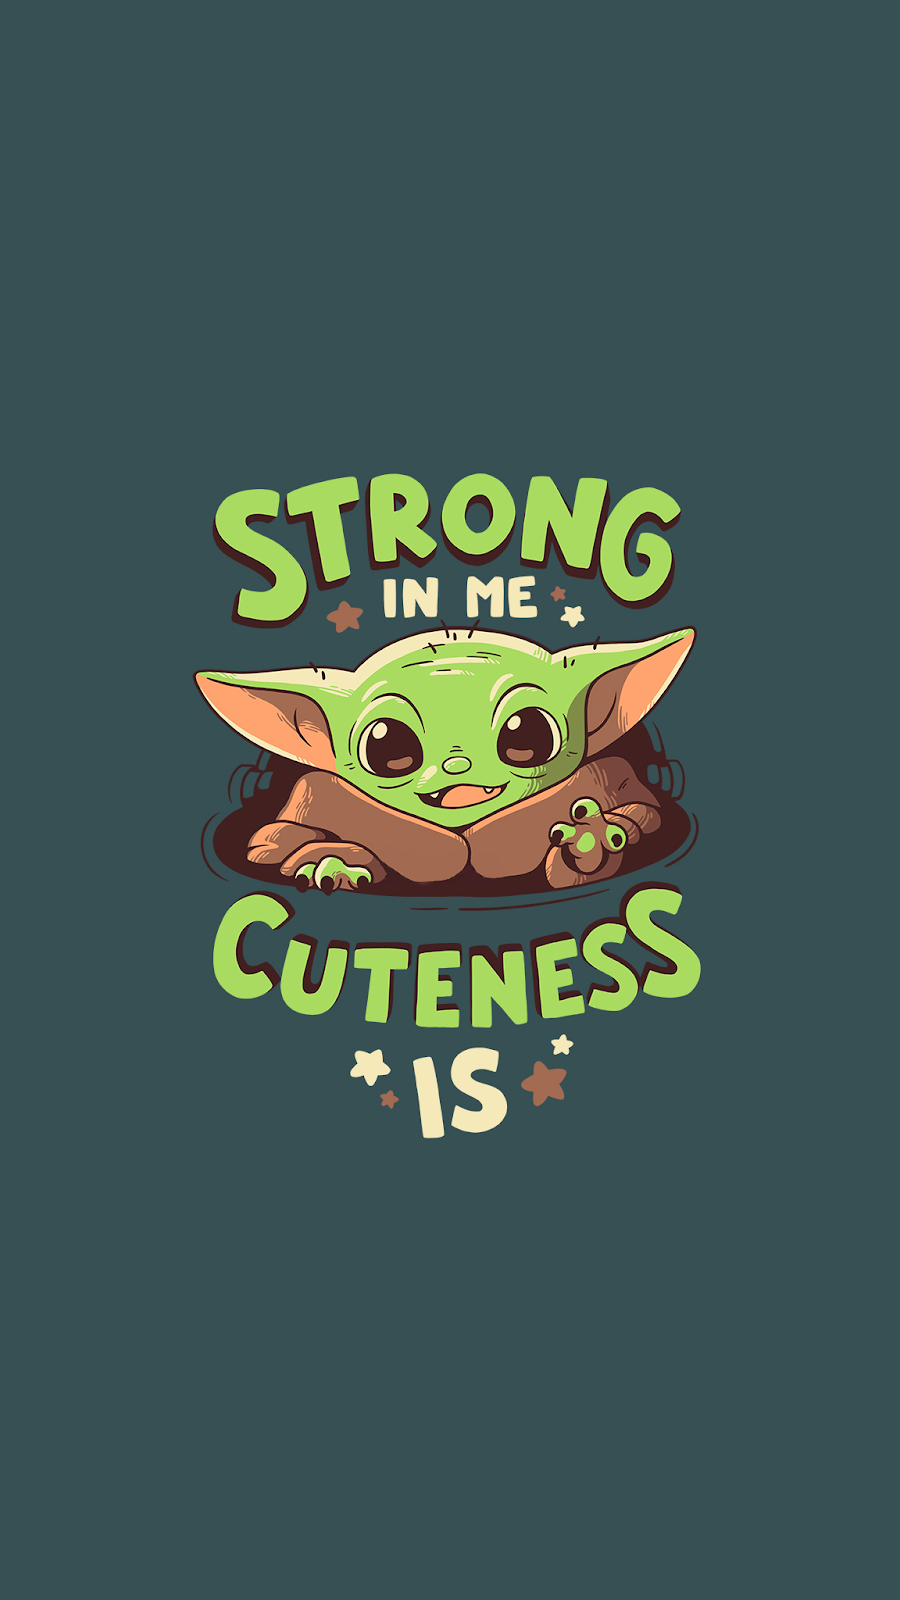 The Best Baby Yoda Wallpapers For You Iphone Or Android Device Take A Look You Ll Like For Sure In 2020 Yoda Wallpaper Star Wars Wallpaper Star Wars Wallpaper Iphone